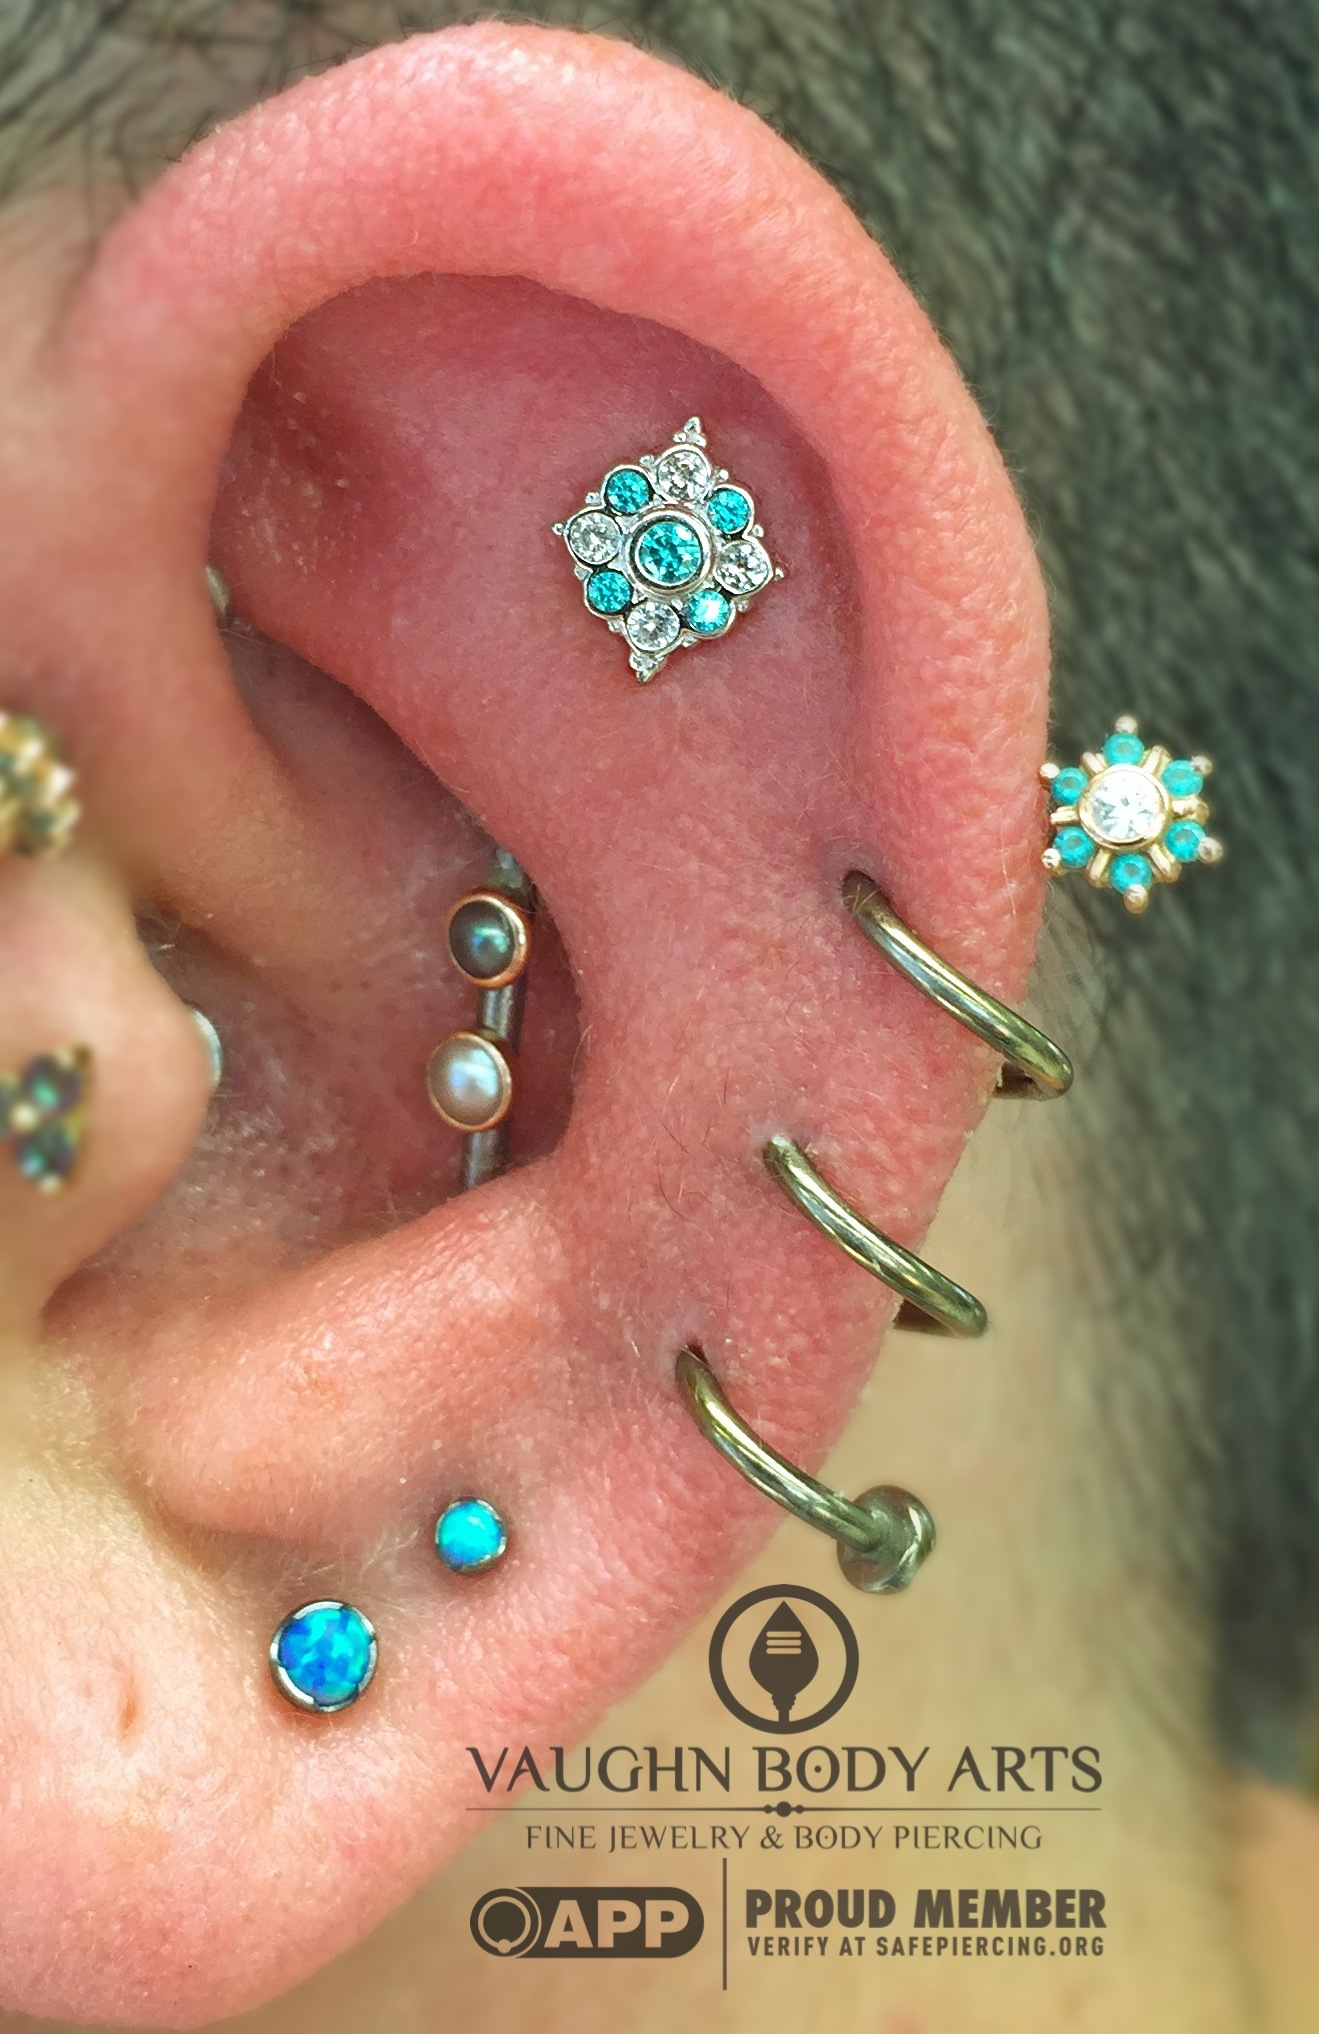 """Helix piercing featuring a 14k white gold """"Angela"""" end with mint green cz's and white sapphires from BVLA."""